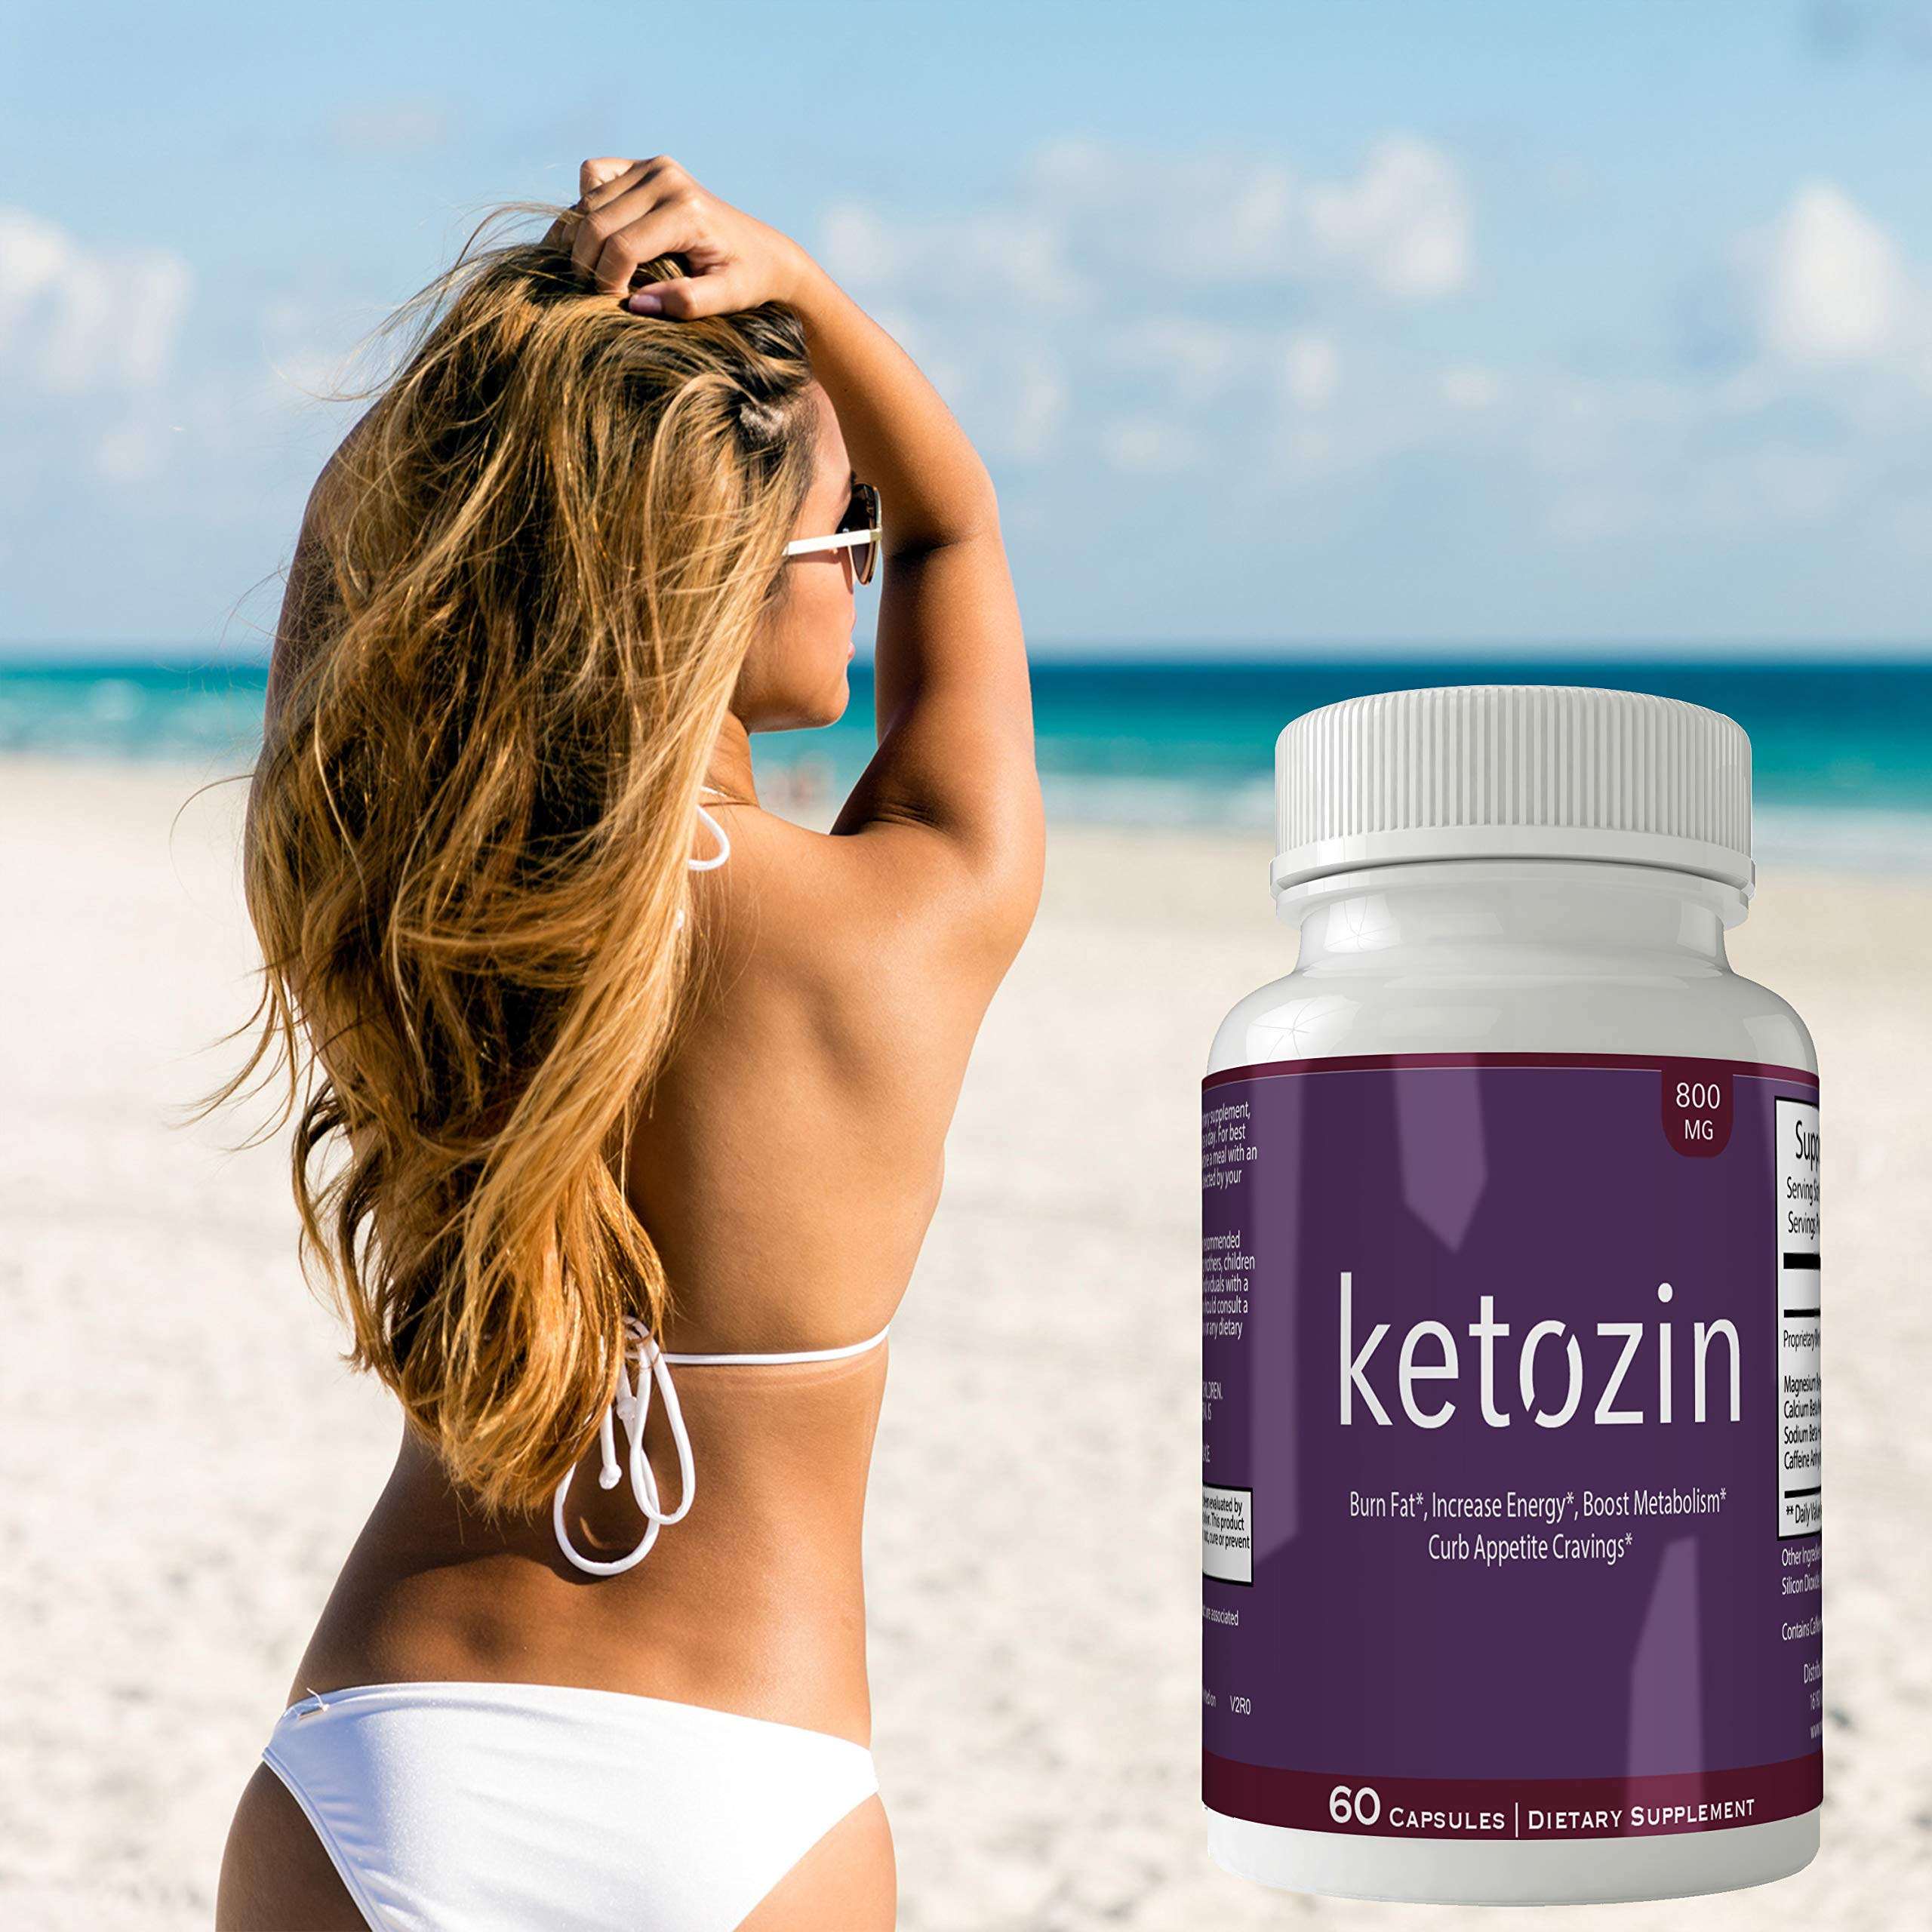 Ketozin Weight Loss Pills Advance Weight Loss Supplement Appetite Suppressant Natural Ketogenic 800 mg Formula with BHB Salts Ketone Diet Capsules to Boost Metabolism, Energy and Focus by nutra4health LLC (Image #4)